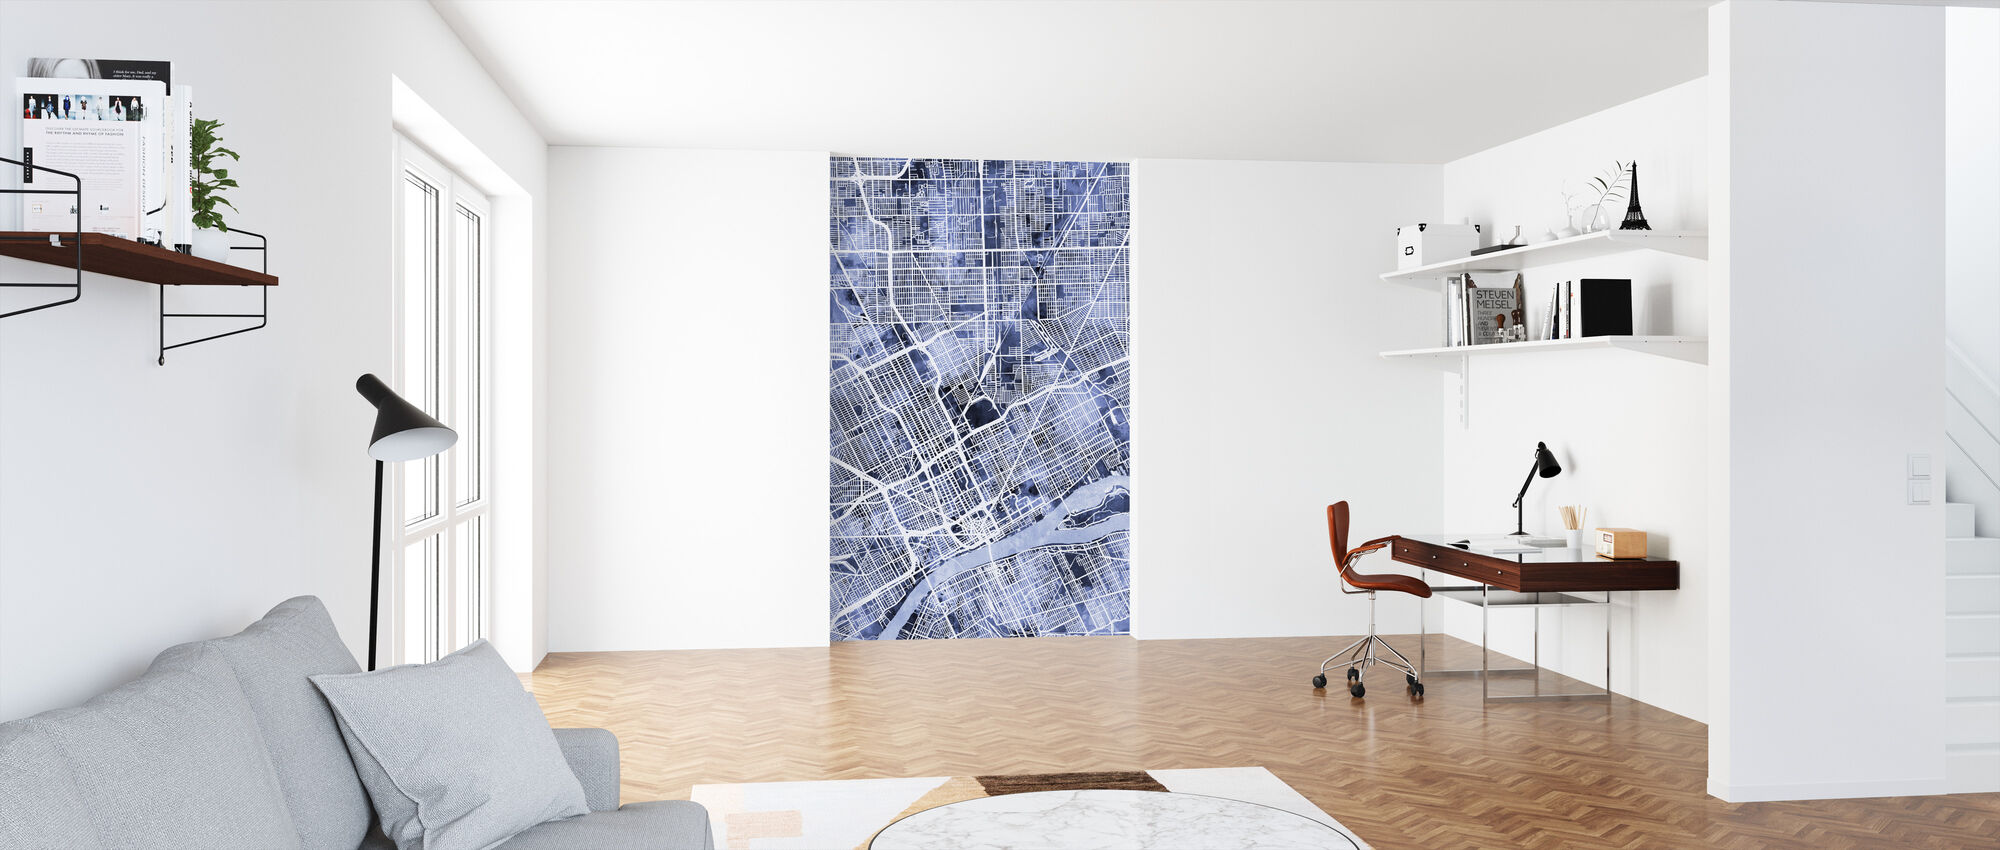 Detroit Michigan City Map - Wallpaper - Office